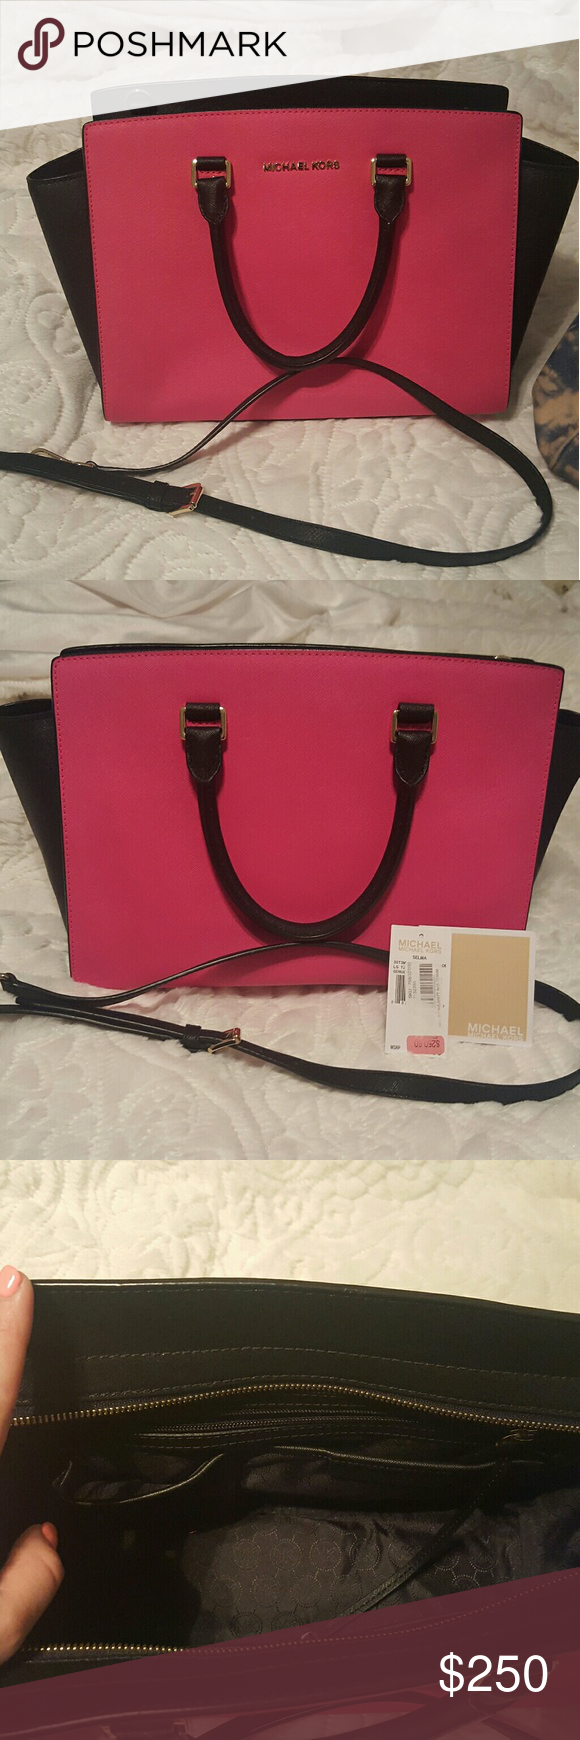 Authentic Michael Kors LARGE Selma handbag Brand new with strap, hot pink and black color block MK selma MICHAEL Michael Kors Bags Satchels